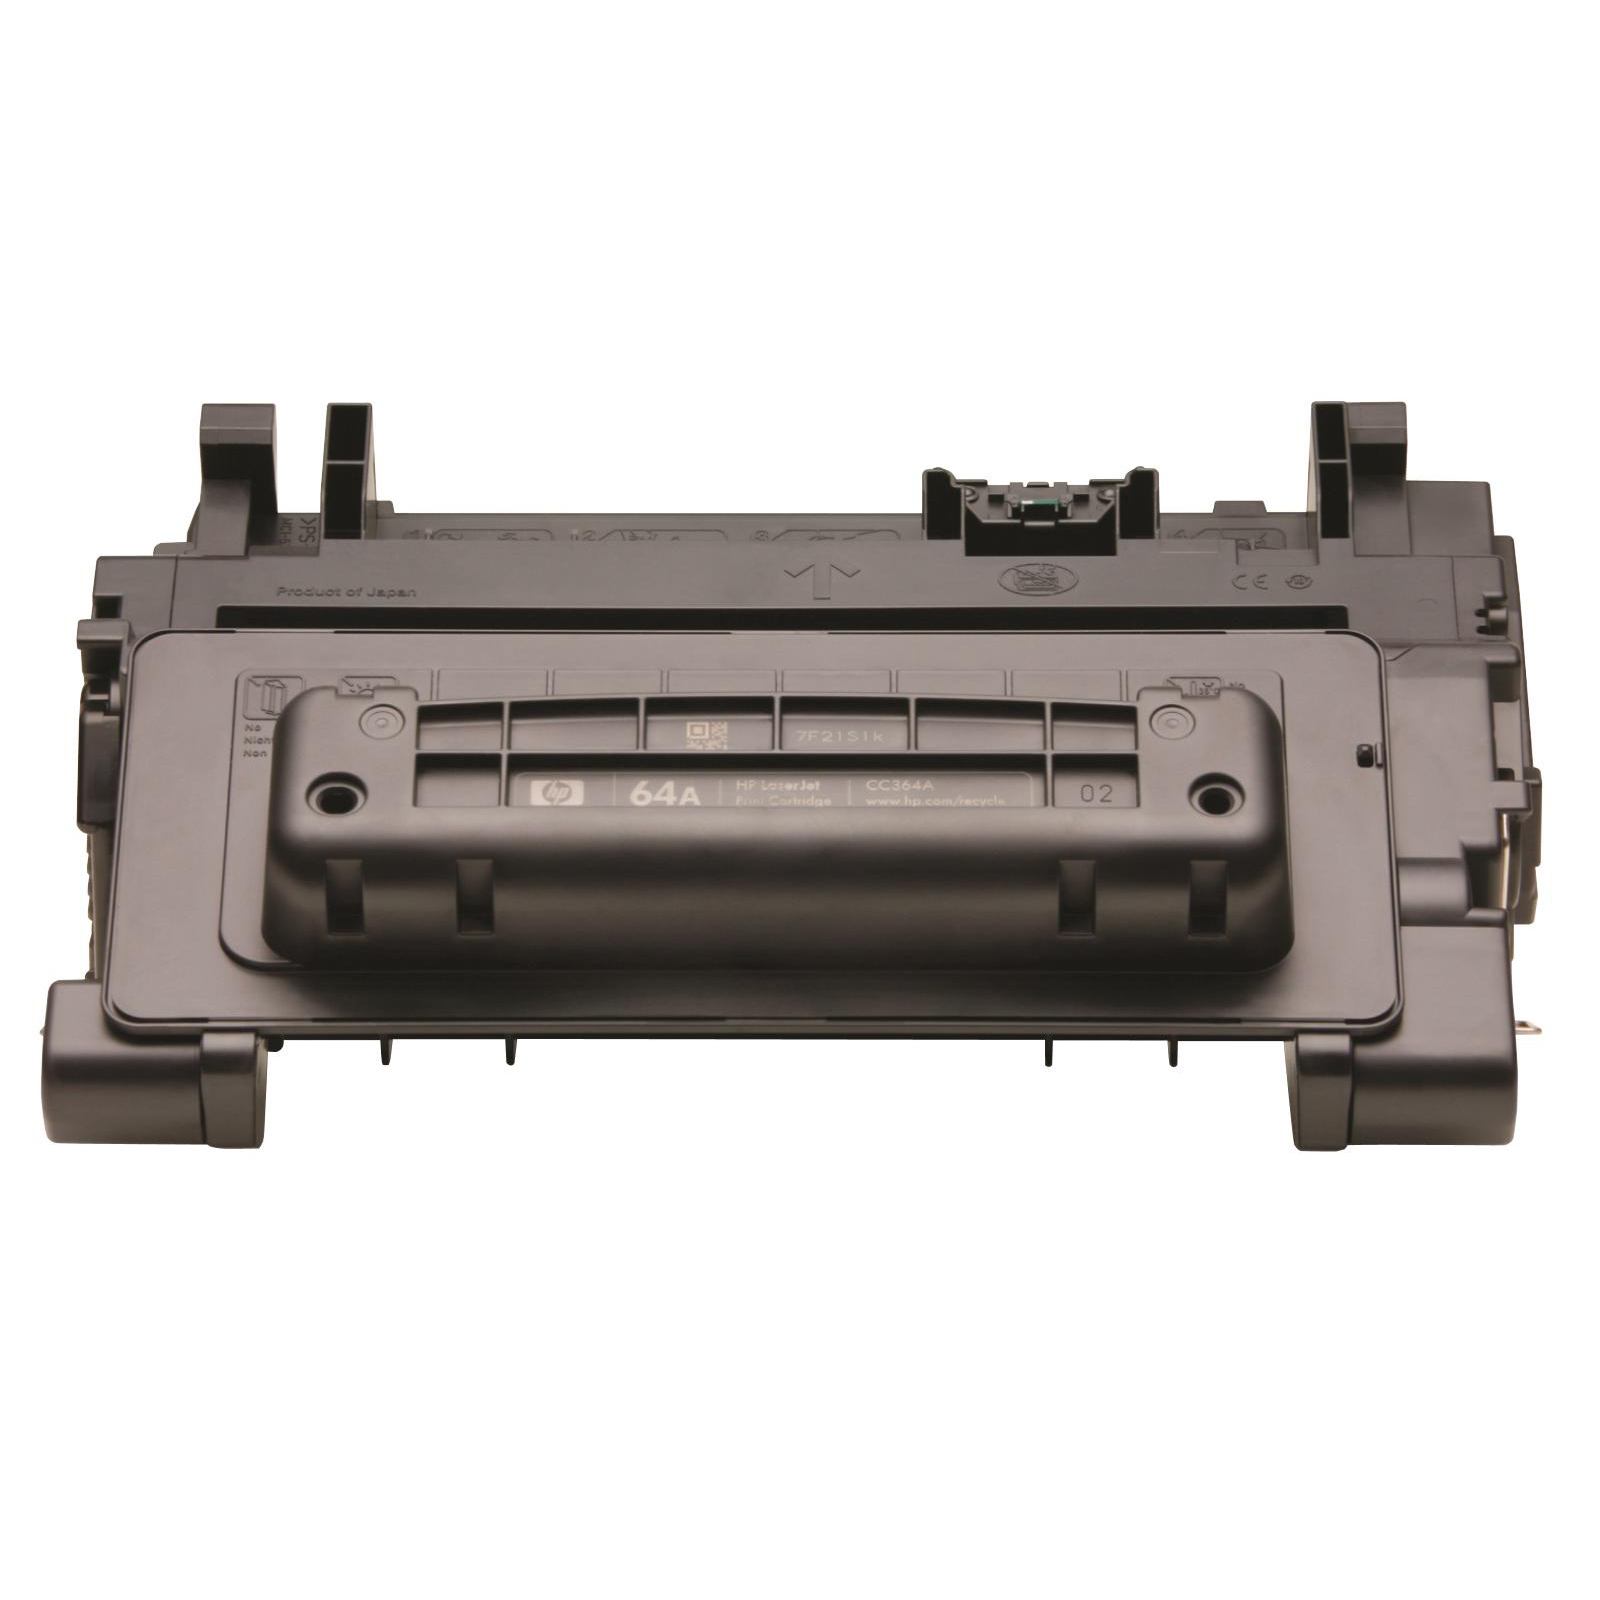 HP 64A Laser Toner Cartridge Page Life 10000pp Black Ref CC364A